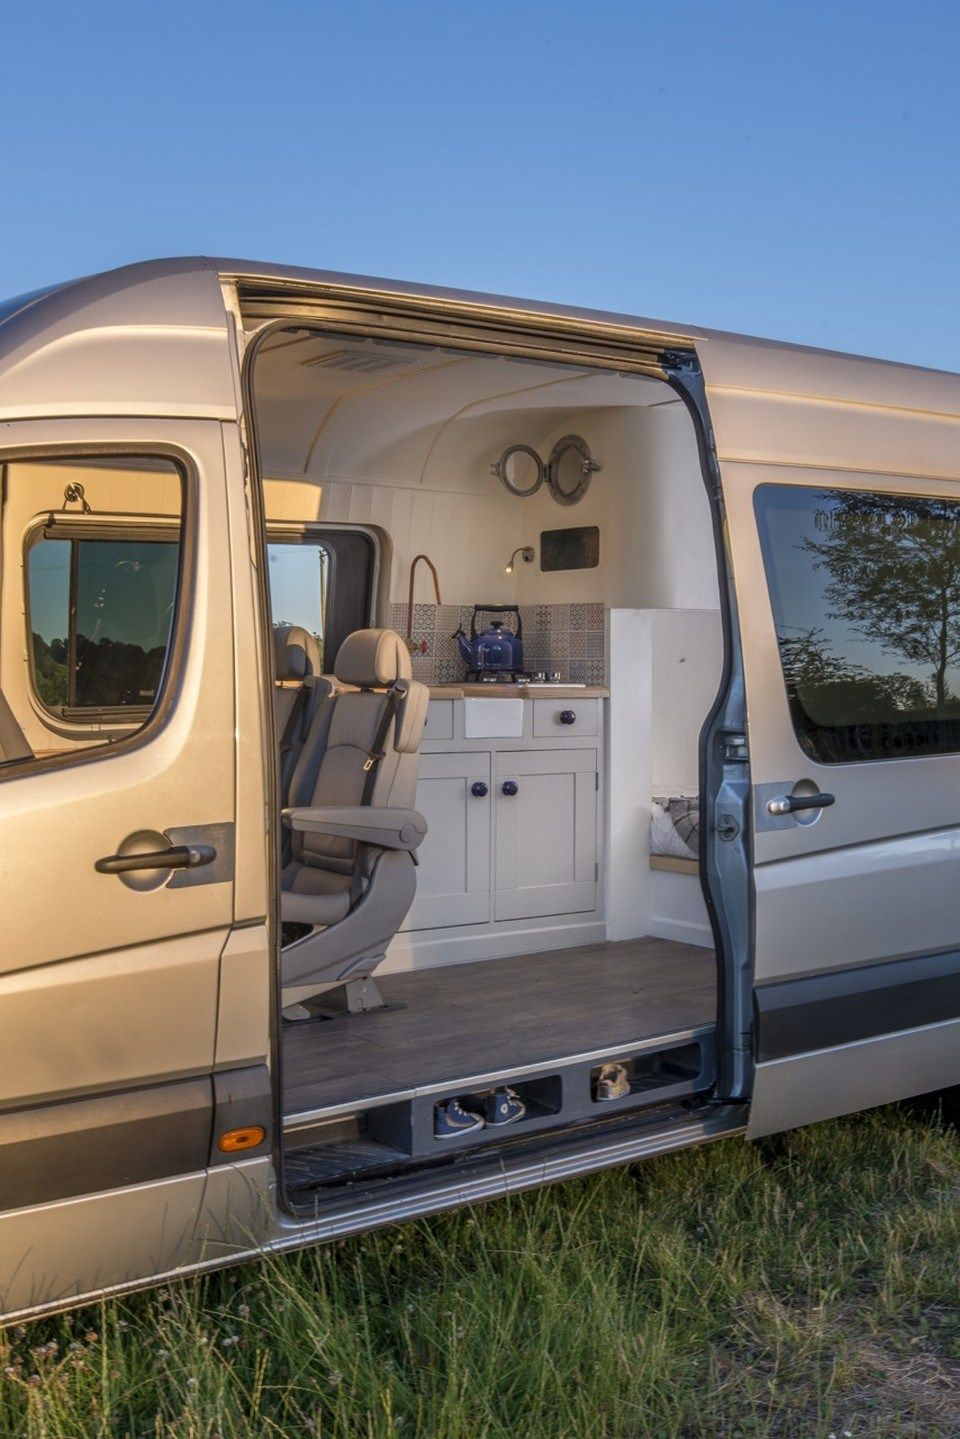 Gallery Of The Sprinter Camper Van Conversion Built In Oxford England Good Idea With Shoe Storage